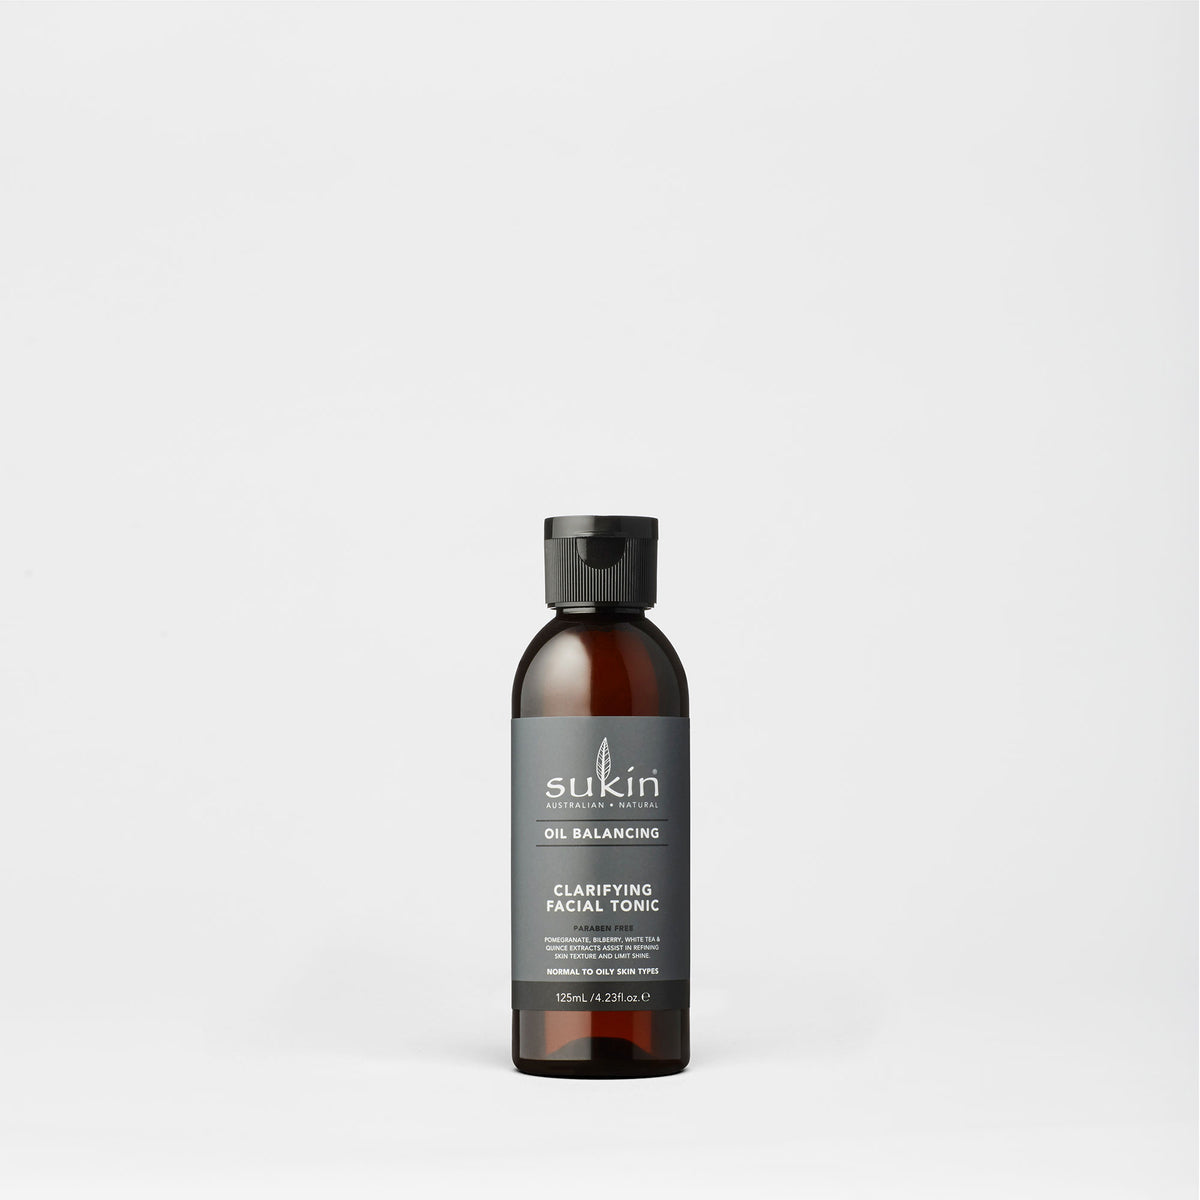 Sukin Natural Clarifying Facial Tonic | Oil Balancing 125ml